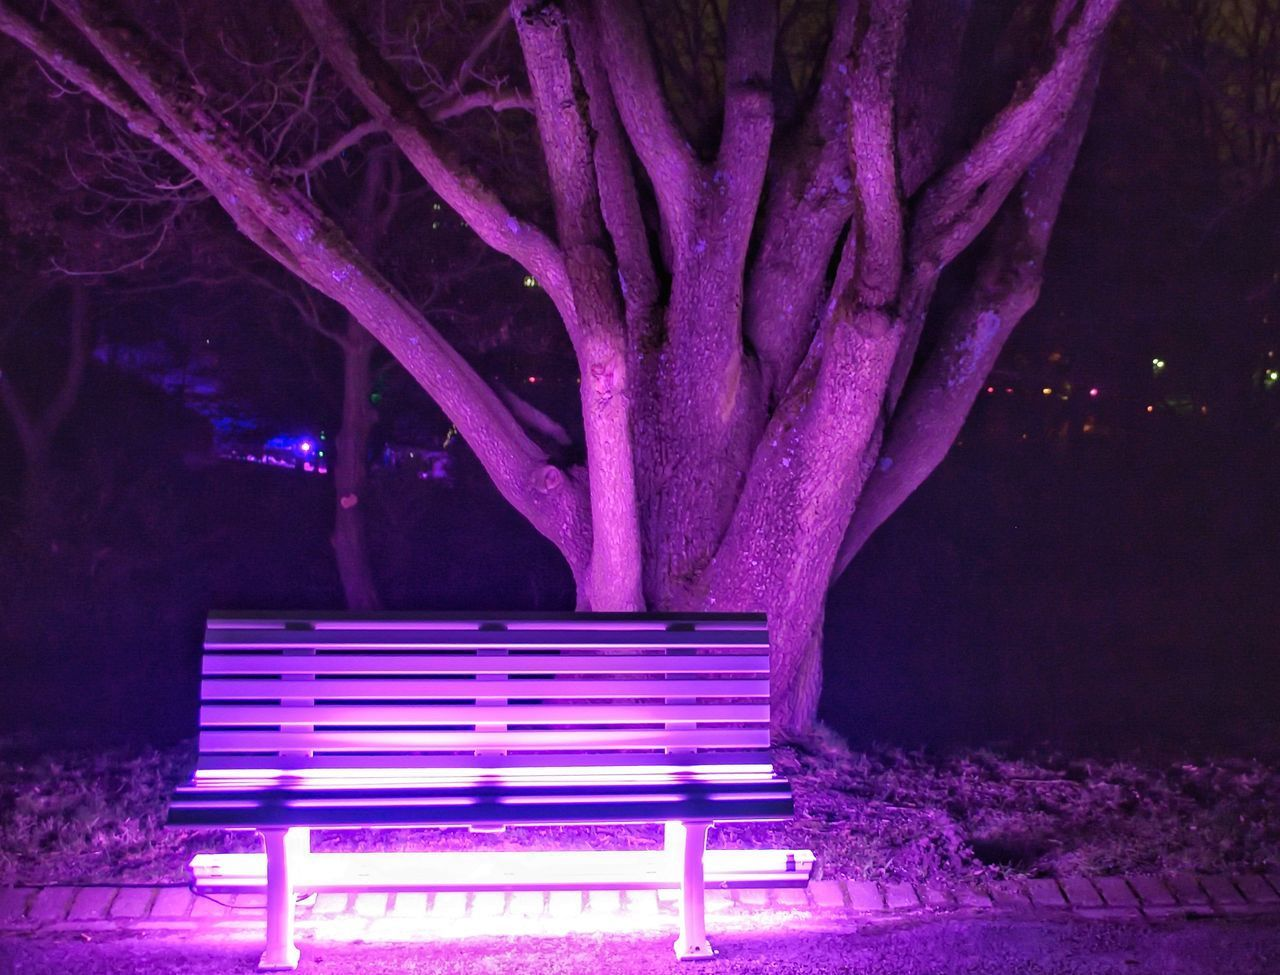 BENCH IN PARK AT NIGHT